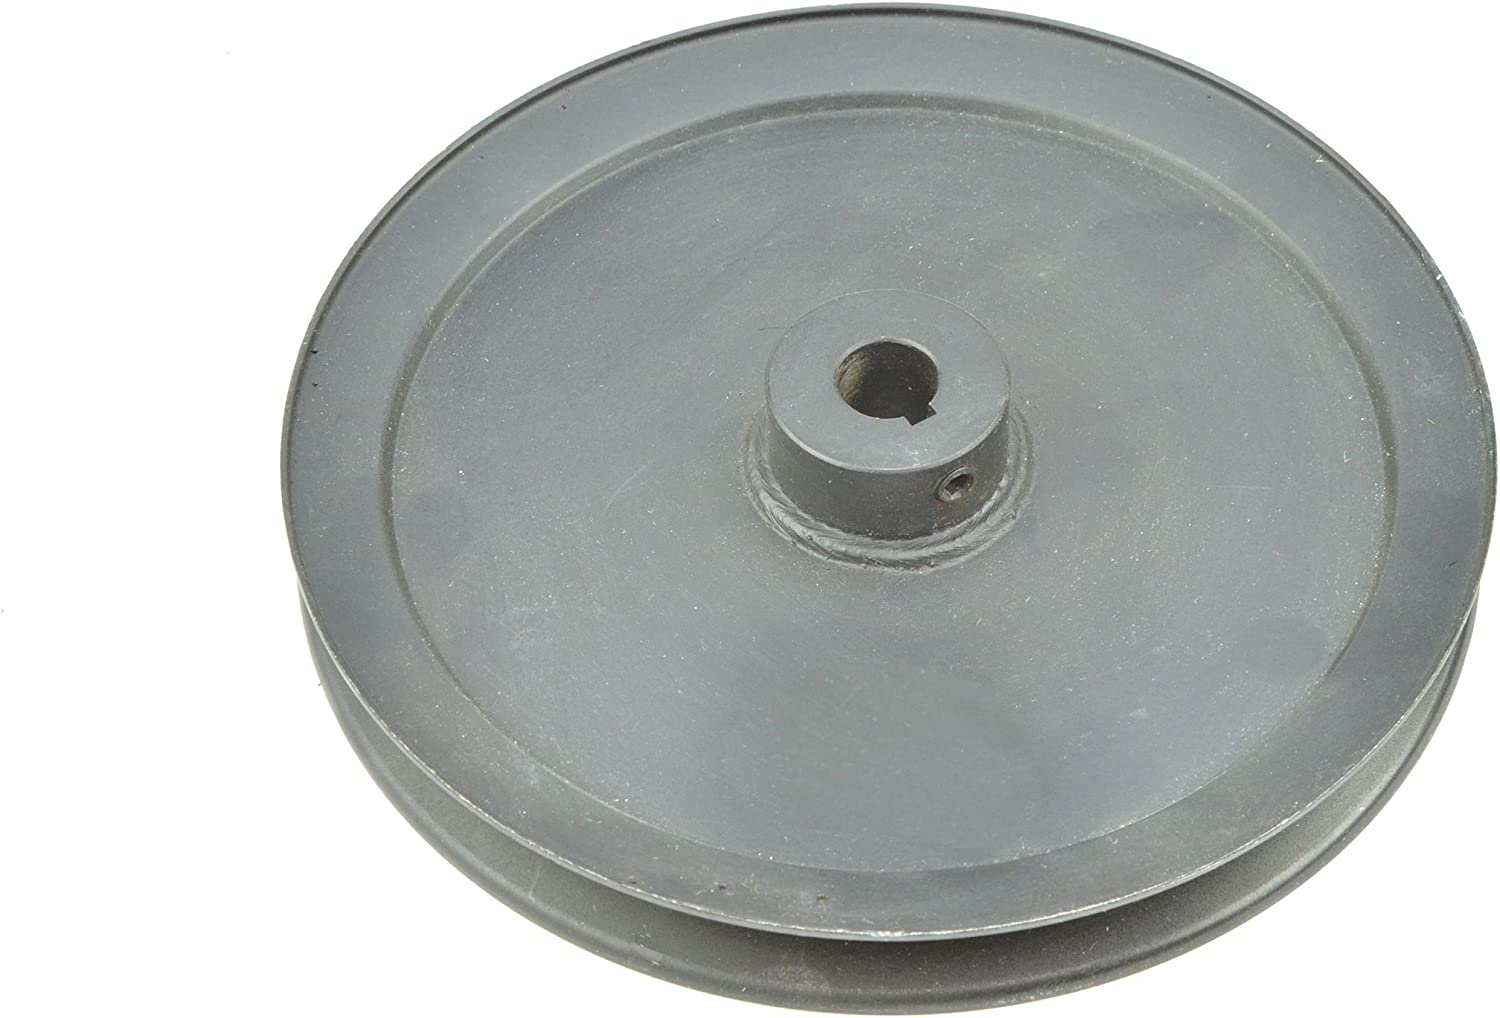 Oregon 44-356 Spindle Drive Pulley 2021 model Murray 90242 Replacement Nippon regular agency for